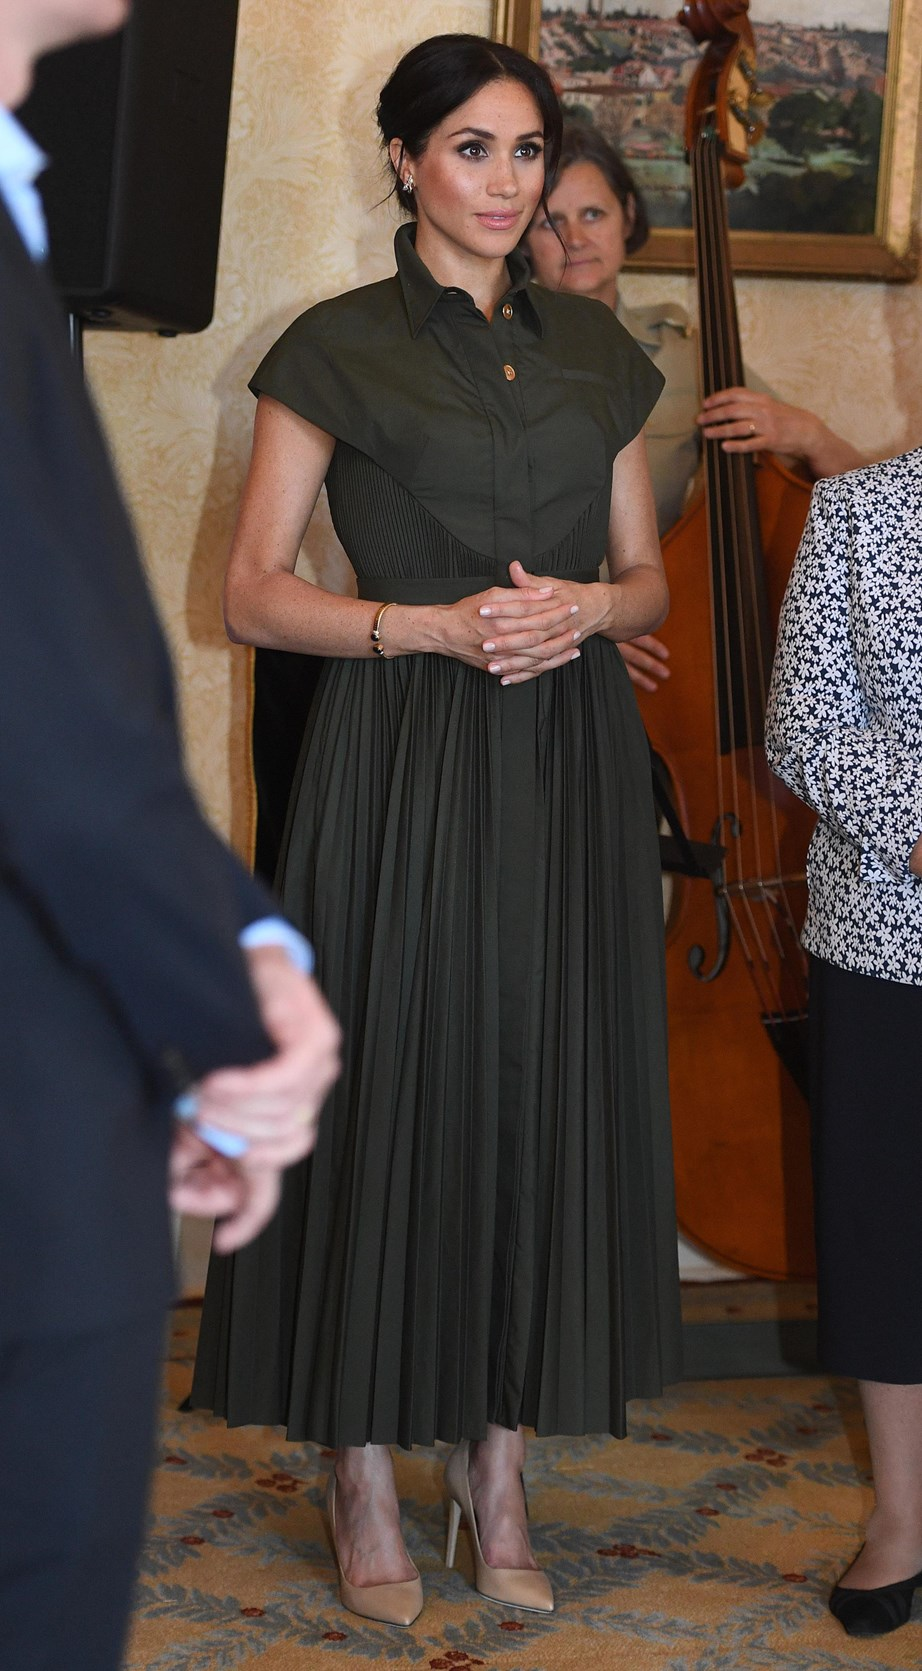 Meghan has been known for her impeccable style - so much so that fans have been so eager to emulate her look - clothing she wears can sell out in minutes. *(Image: Getty)*